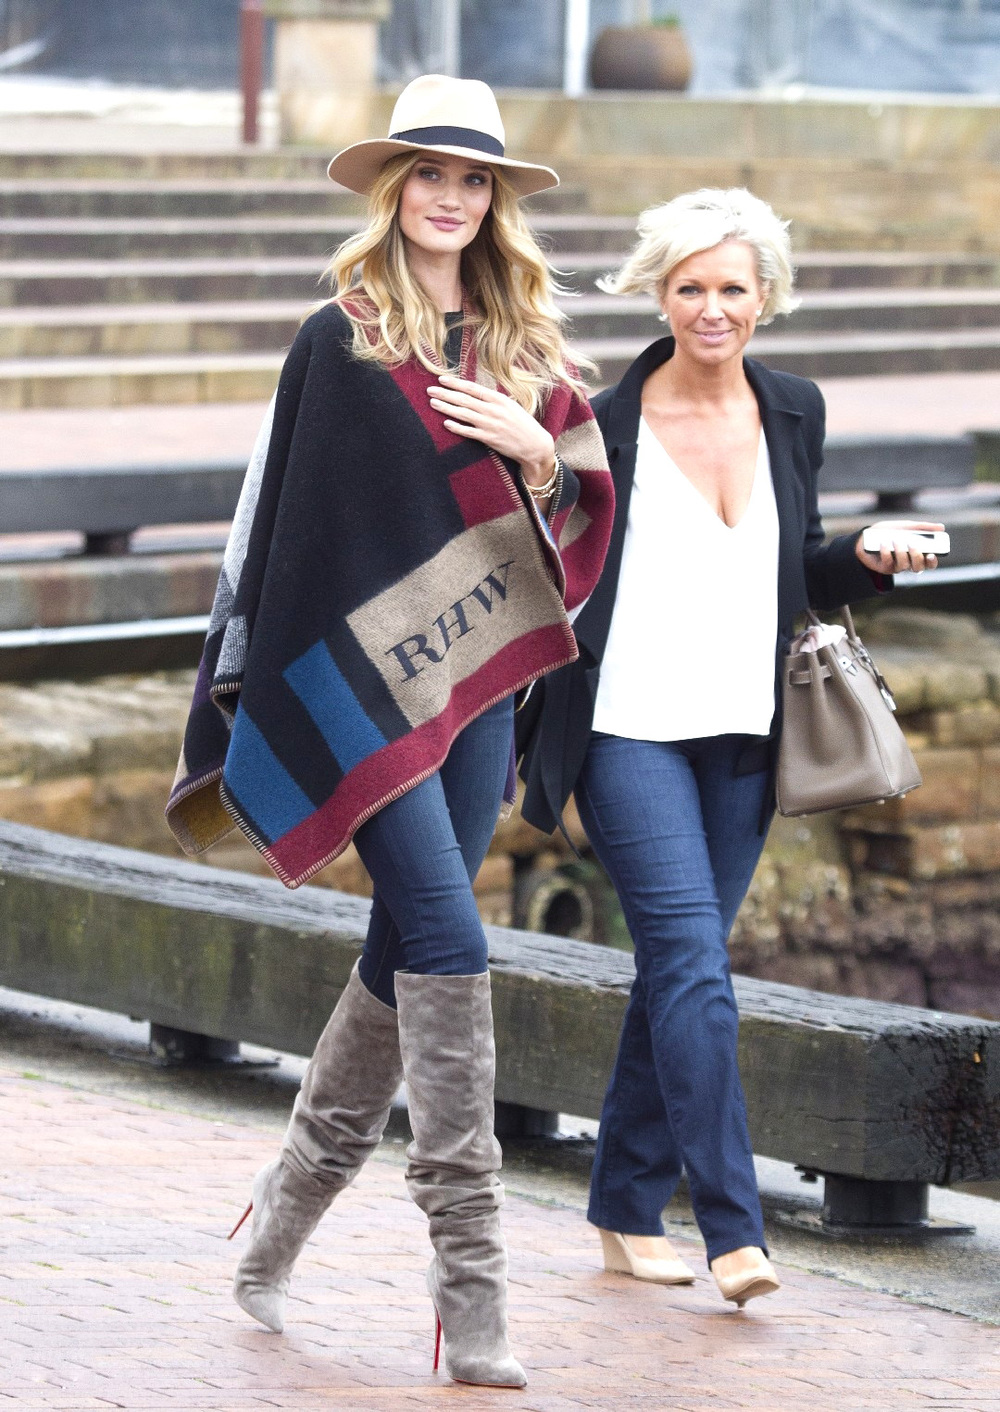 la-modella-mafia-Rosie-Huntington-Whiteley-2014-street-style-in-a-custom-initialized-Burberry-cape-2.jpg